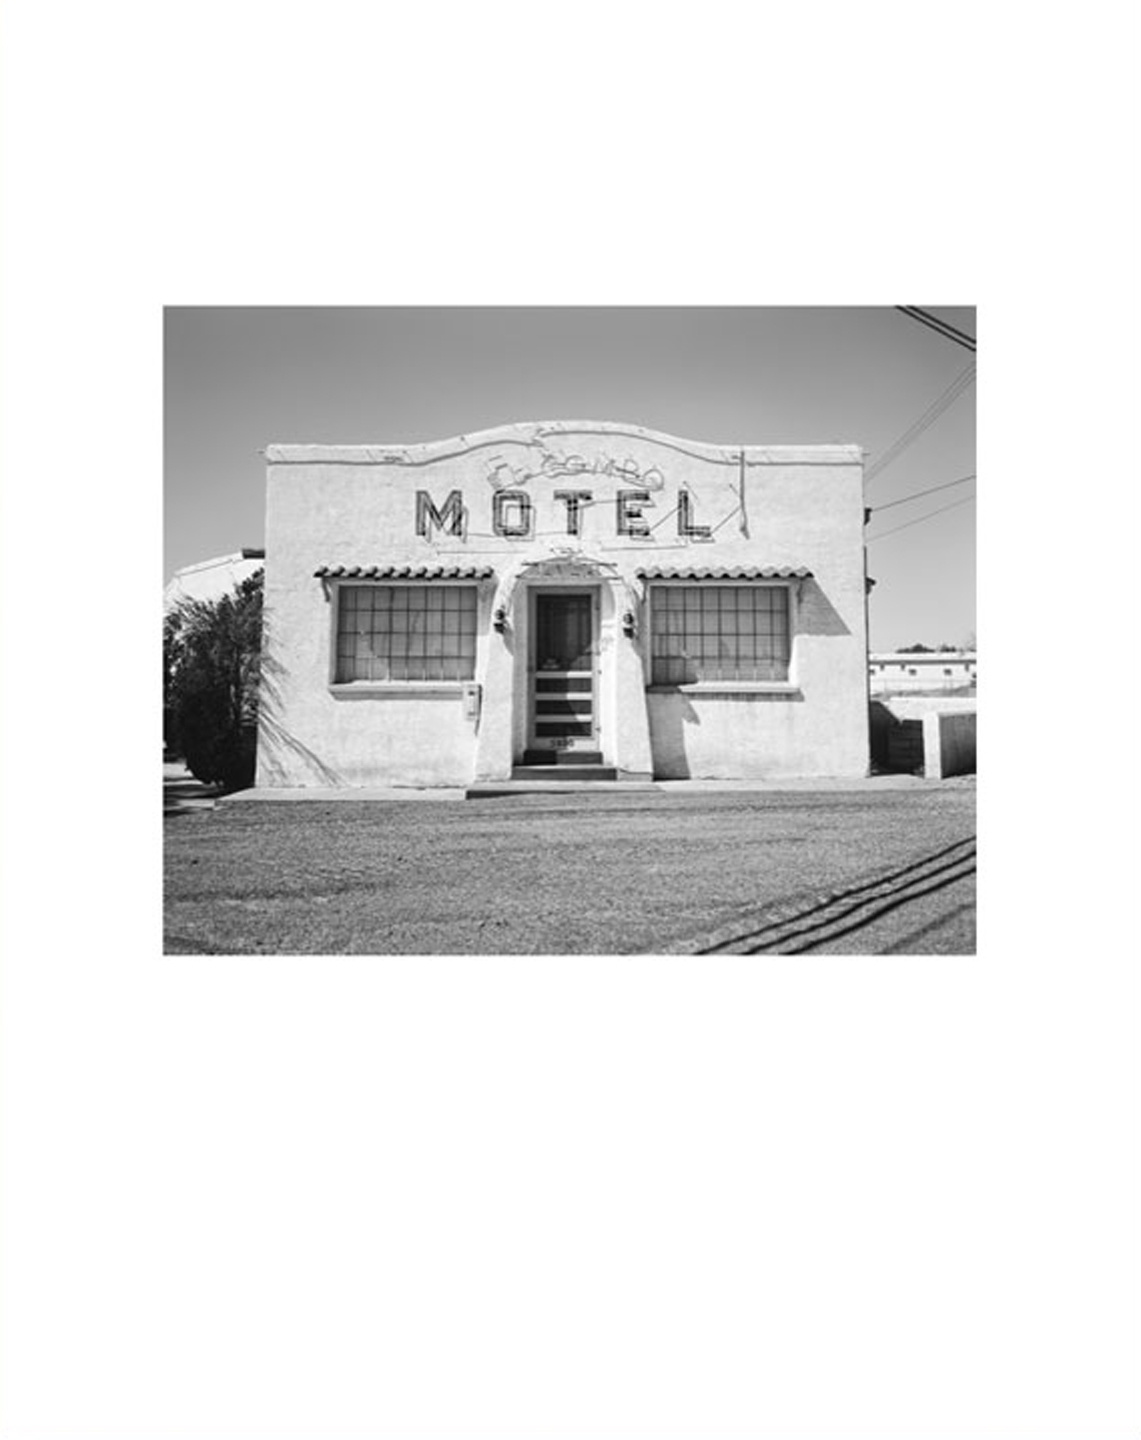 "NZ Library #1: John Schott: Route 66, Special Limited Edition (with Gelatin Silver Contact Print ""New Topographics #122 Untitled, 1973,"" Motel Office with Neon Cactus Sign) (NZ Library - Set One, Volume Six)"